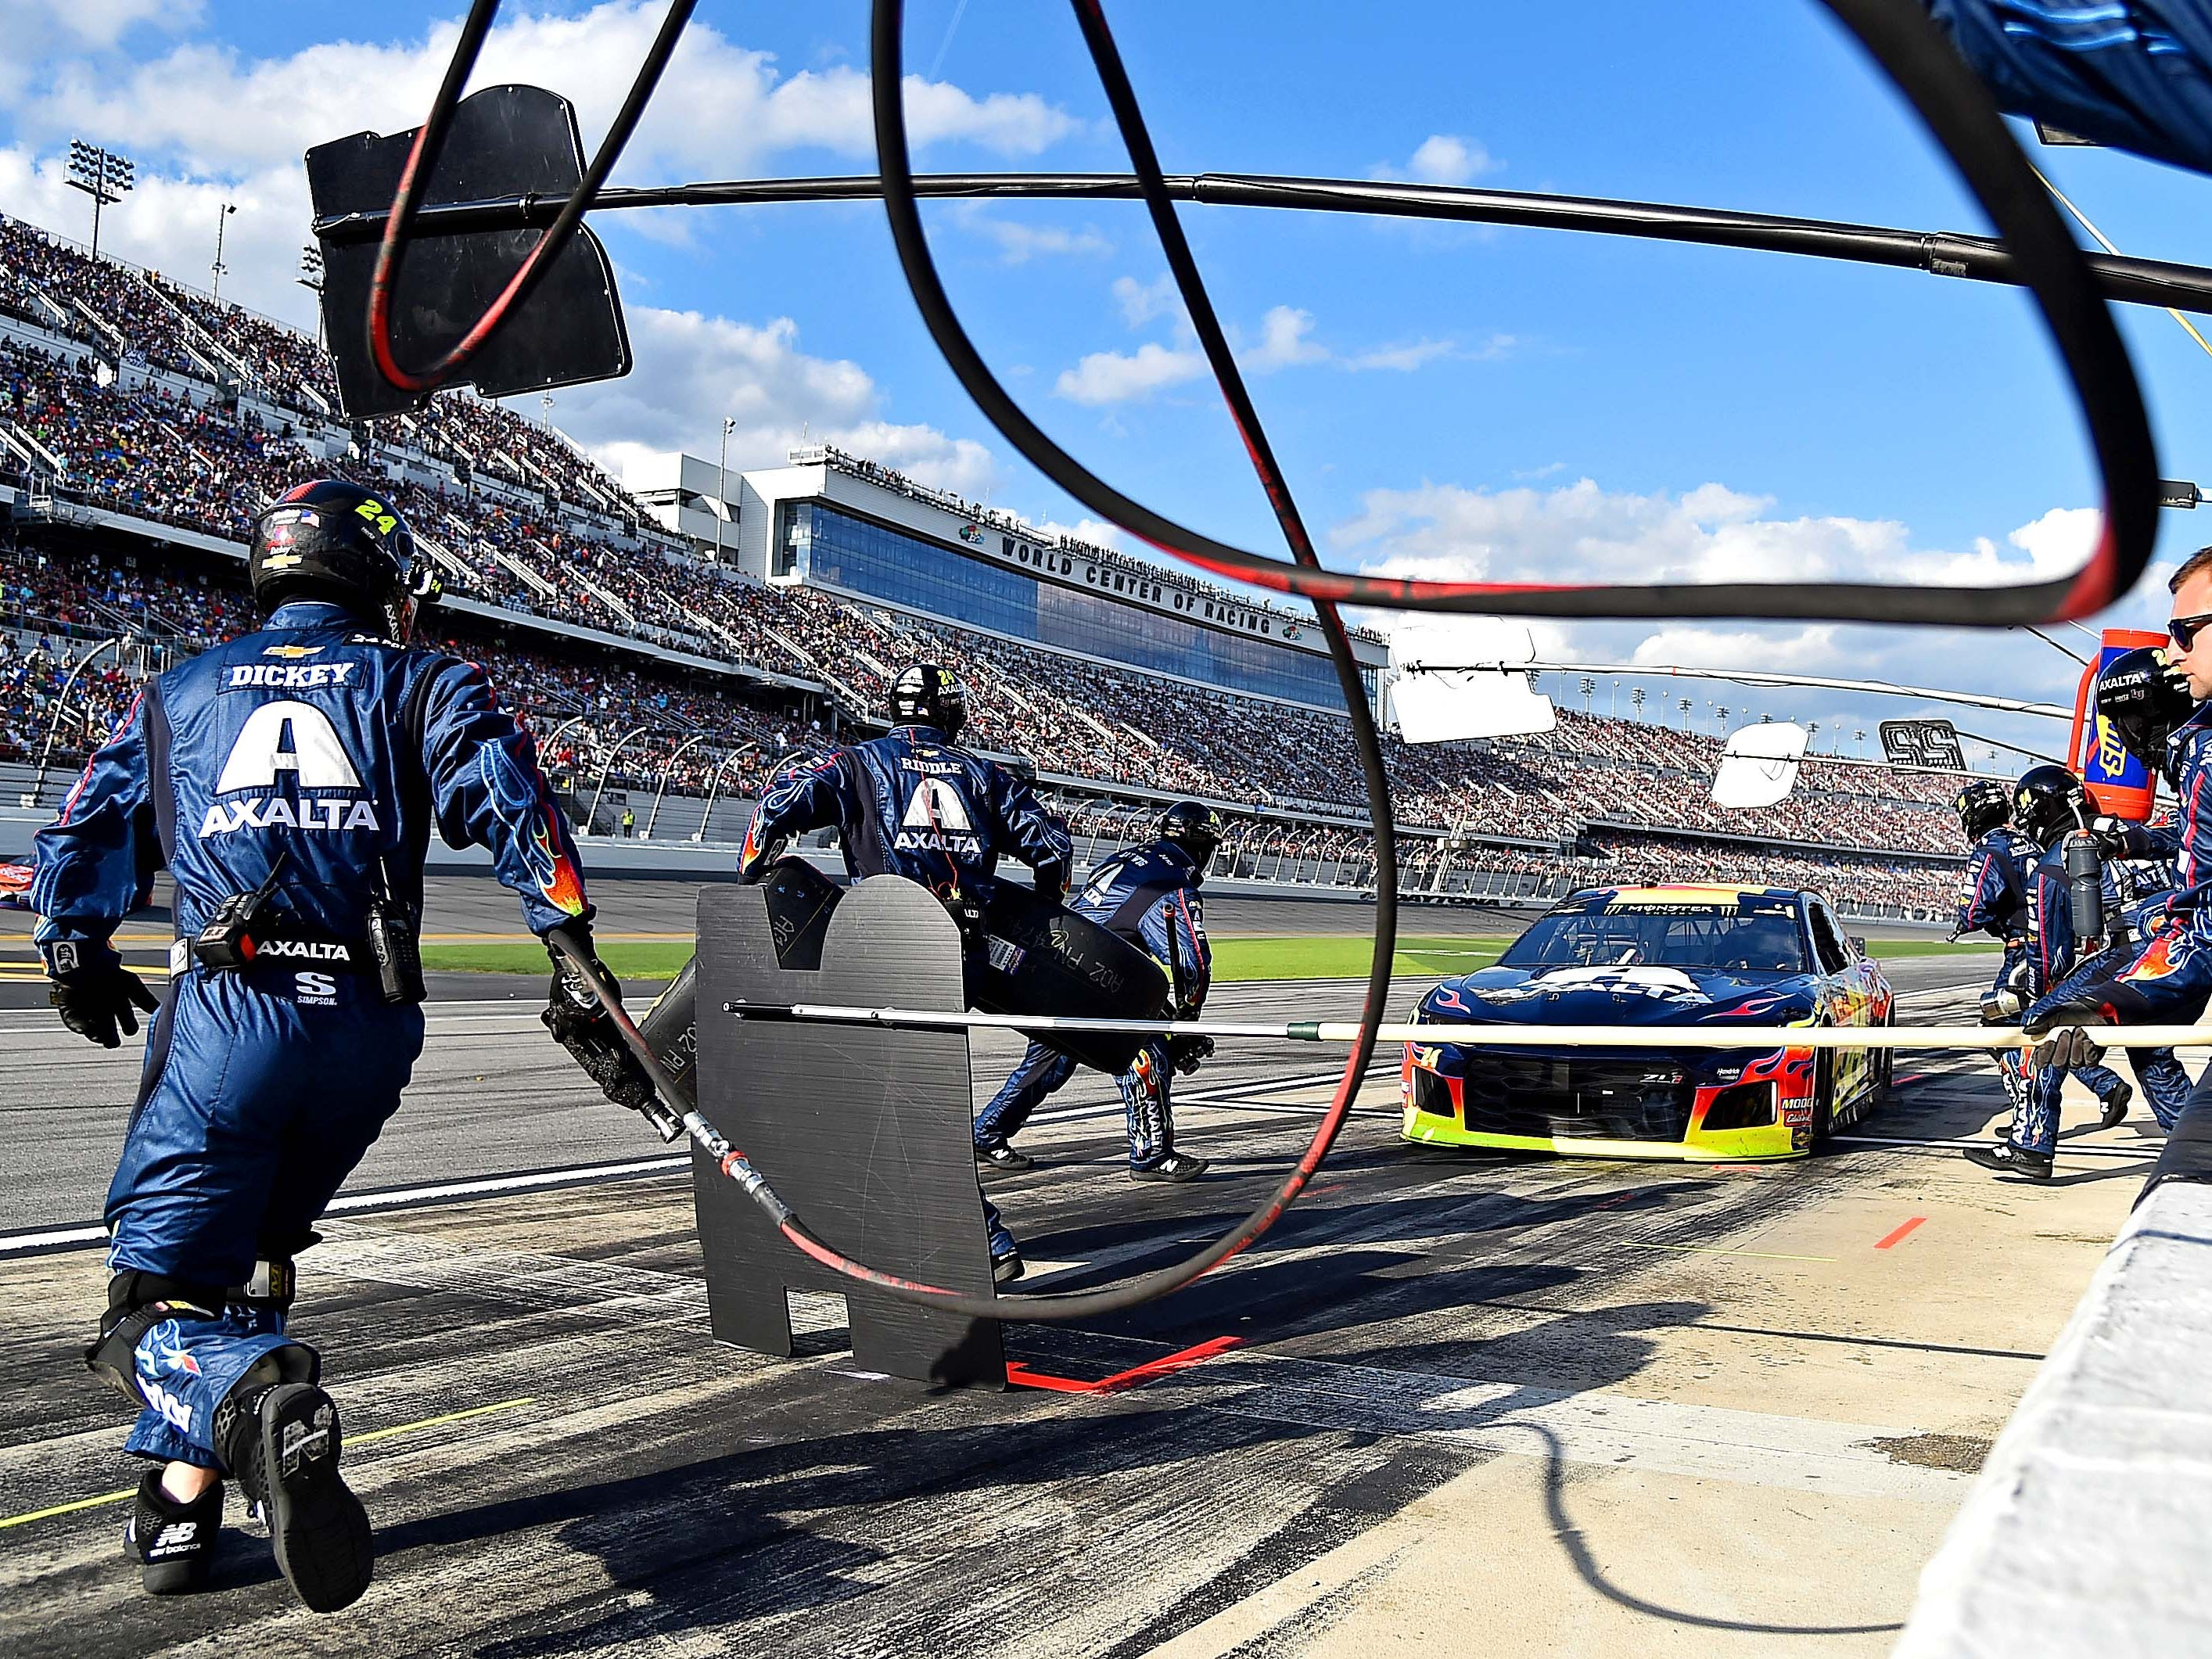 NASCAR Cup Series driver William Bryon (24) makes a pit stop during the Daytona 500 at Daytona International Speedway.